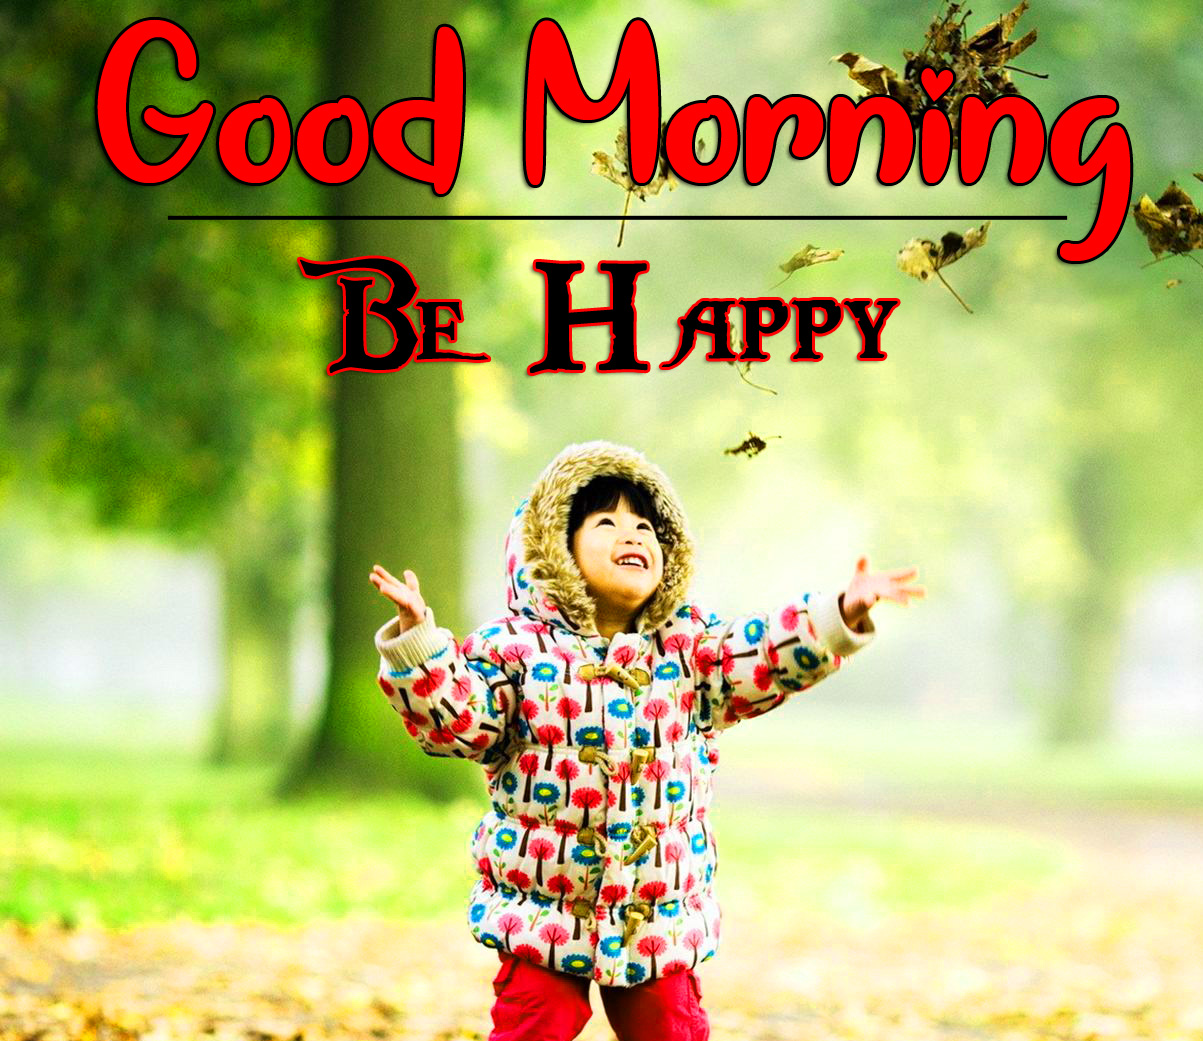 Happy Family Good Morning Wishes Images 8